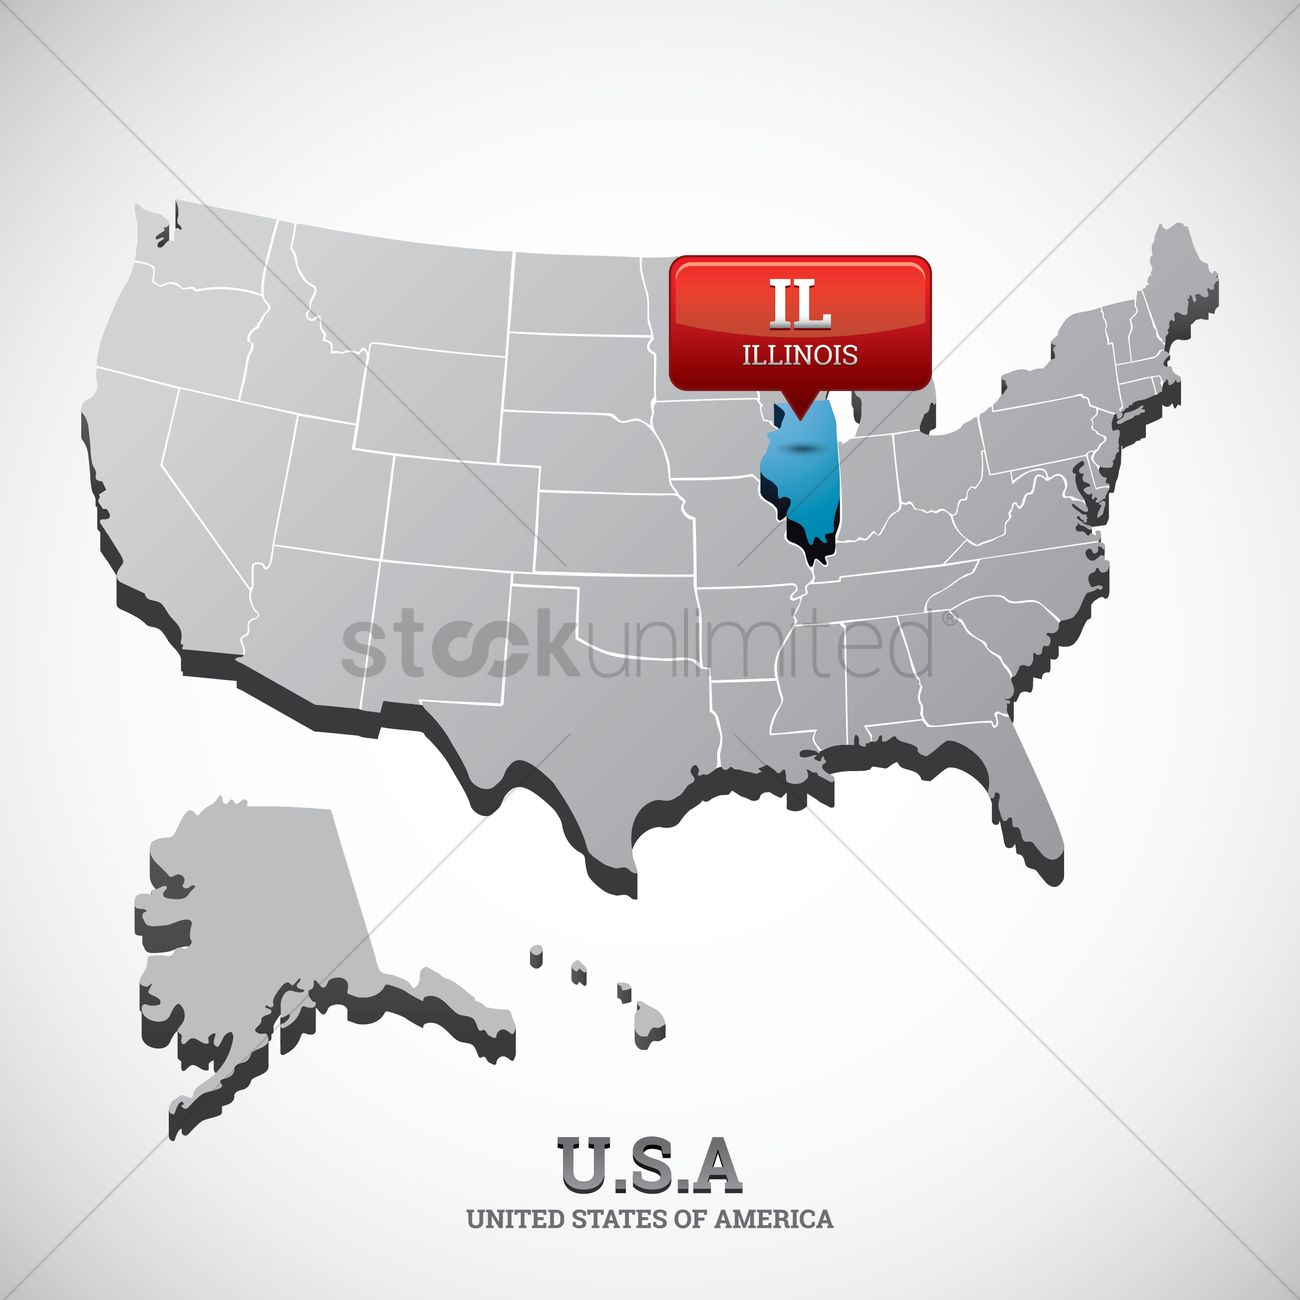 Illinois State On The Map Of Usa Vector Image 1532658 Stockunlimited - Illinois-in-us-map